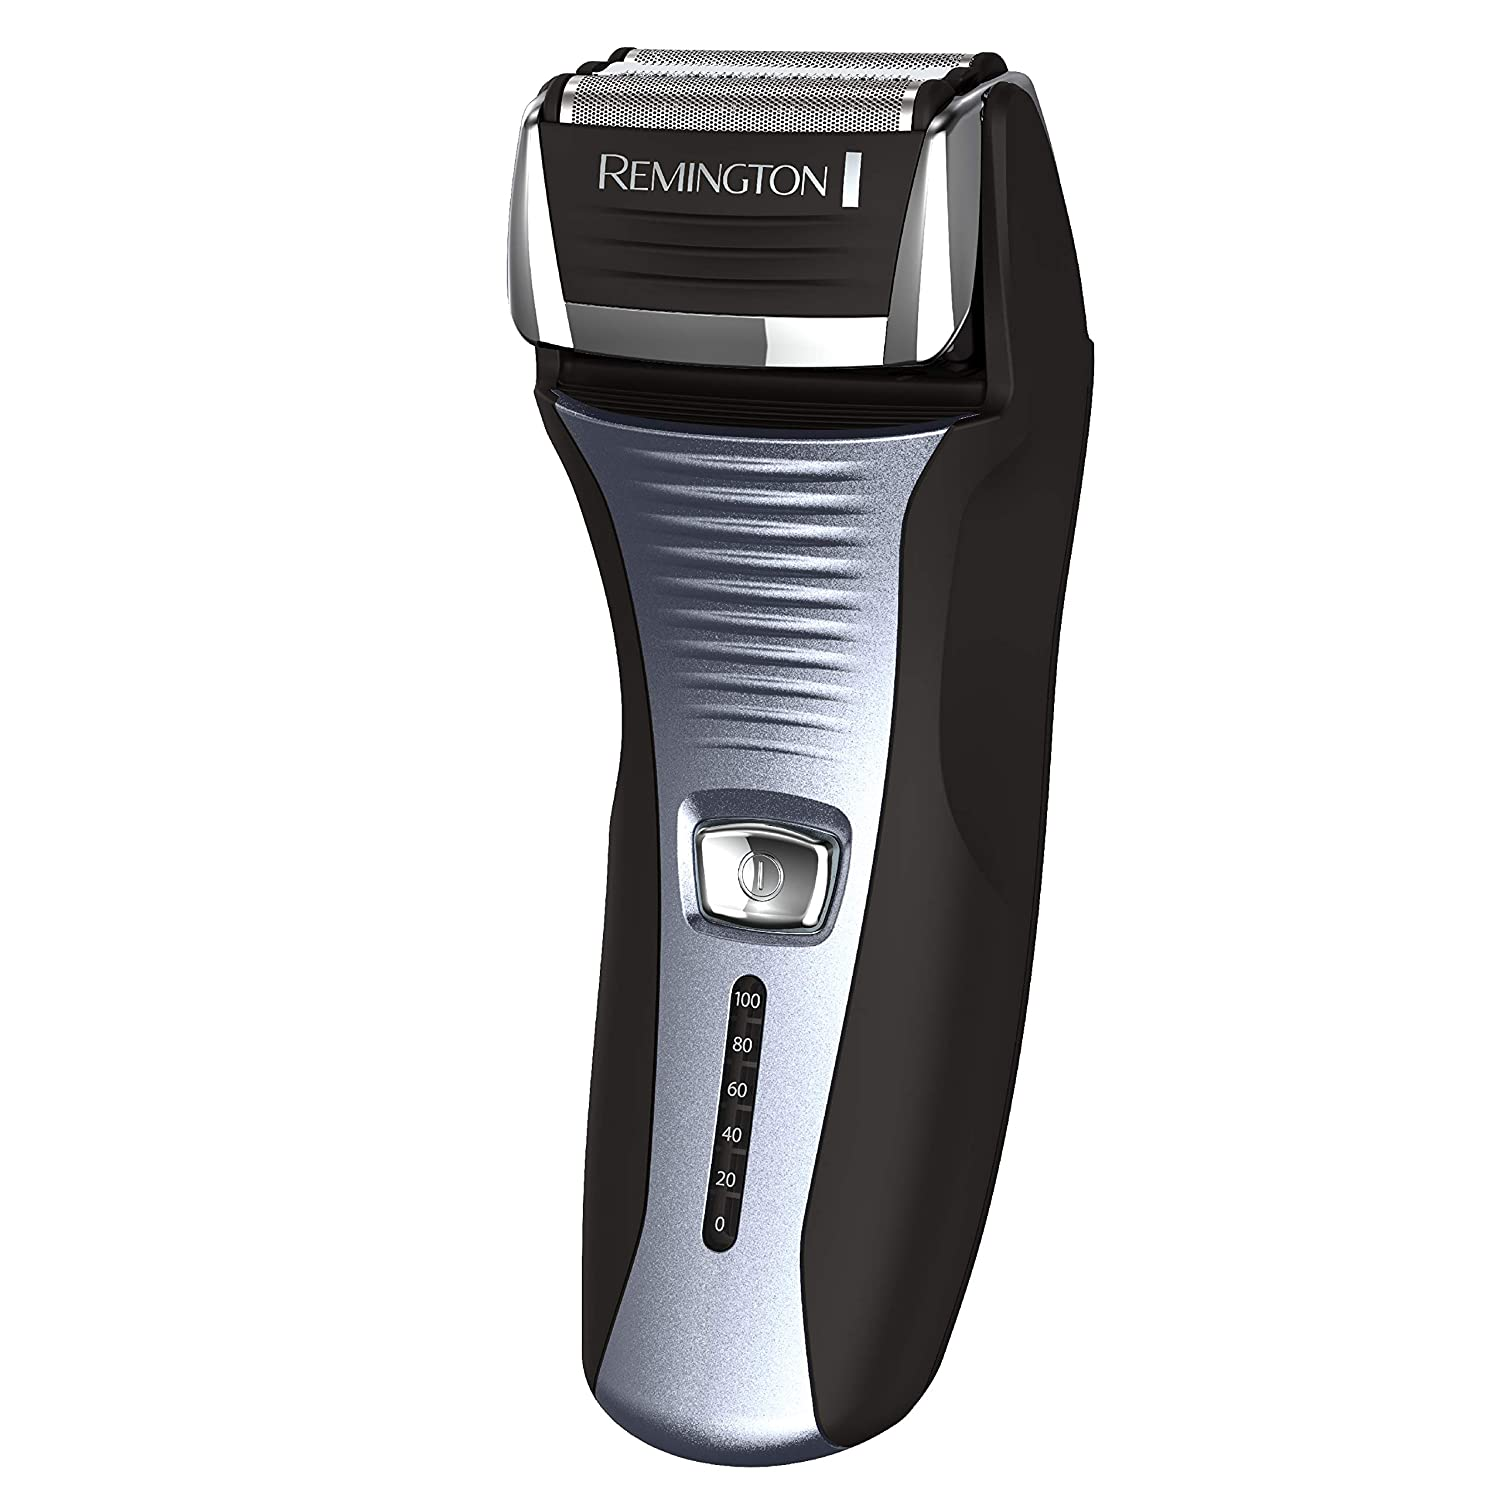 Remington F5-5800A Rechargeable Foil with Interceptor Shaving Technology